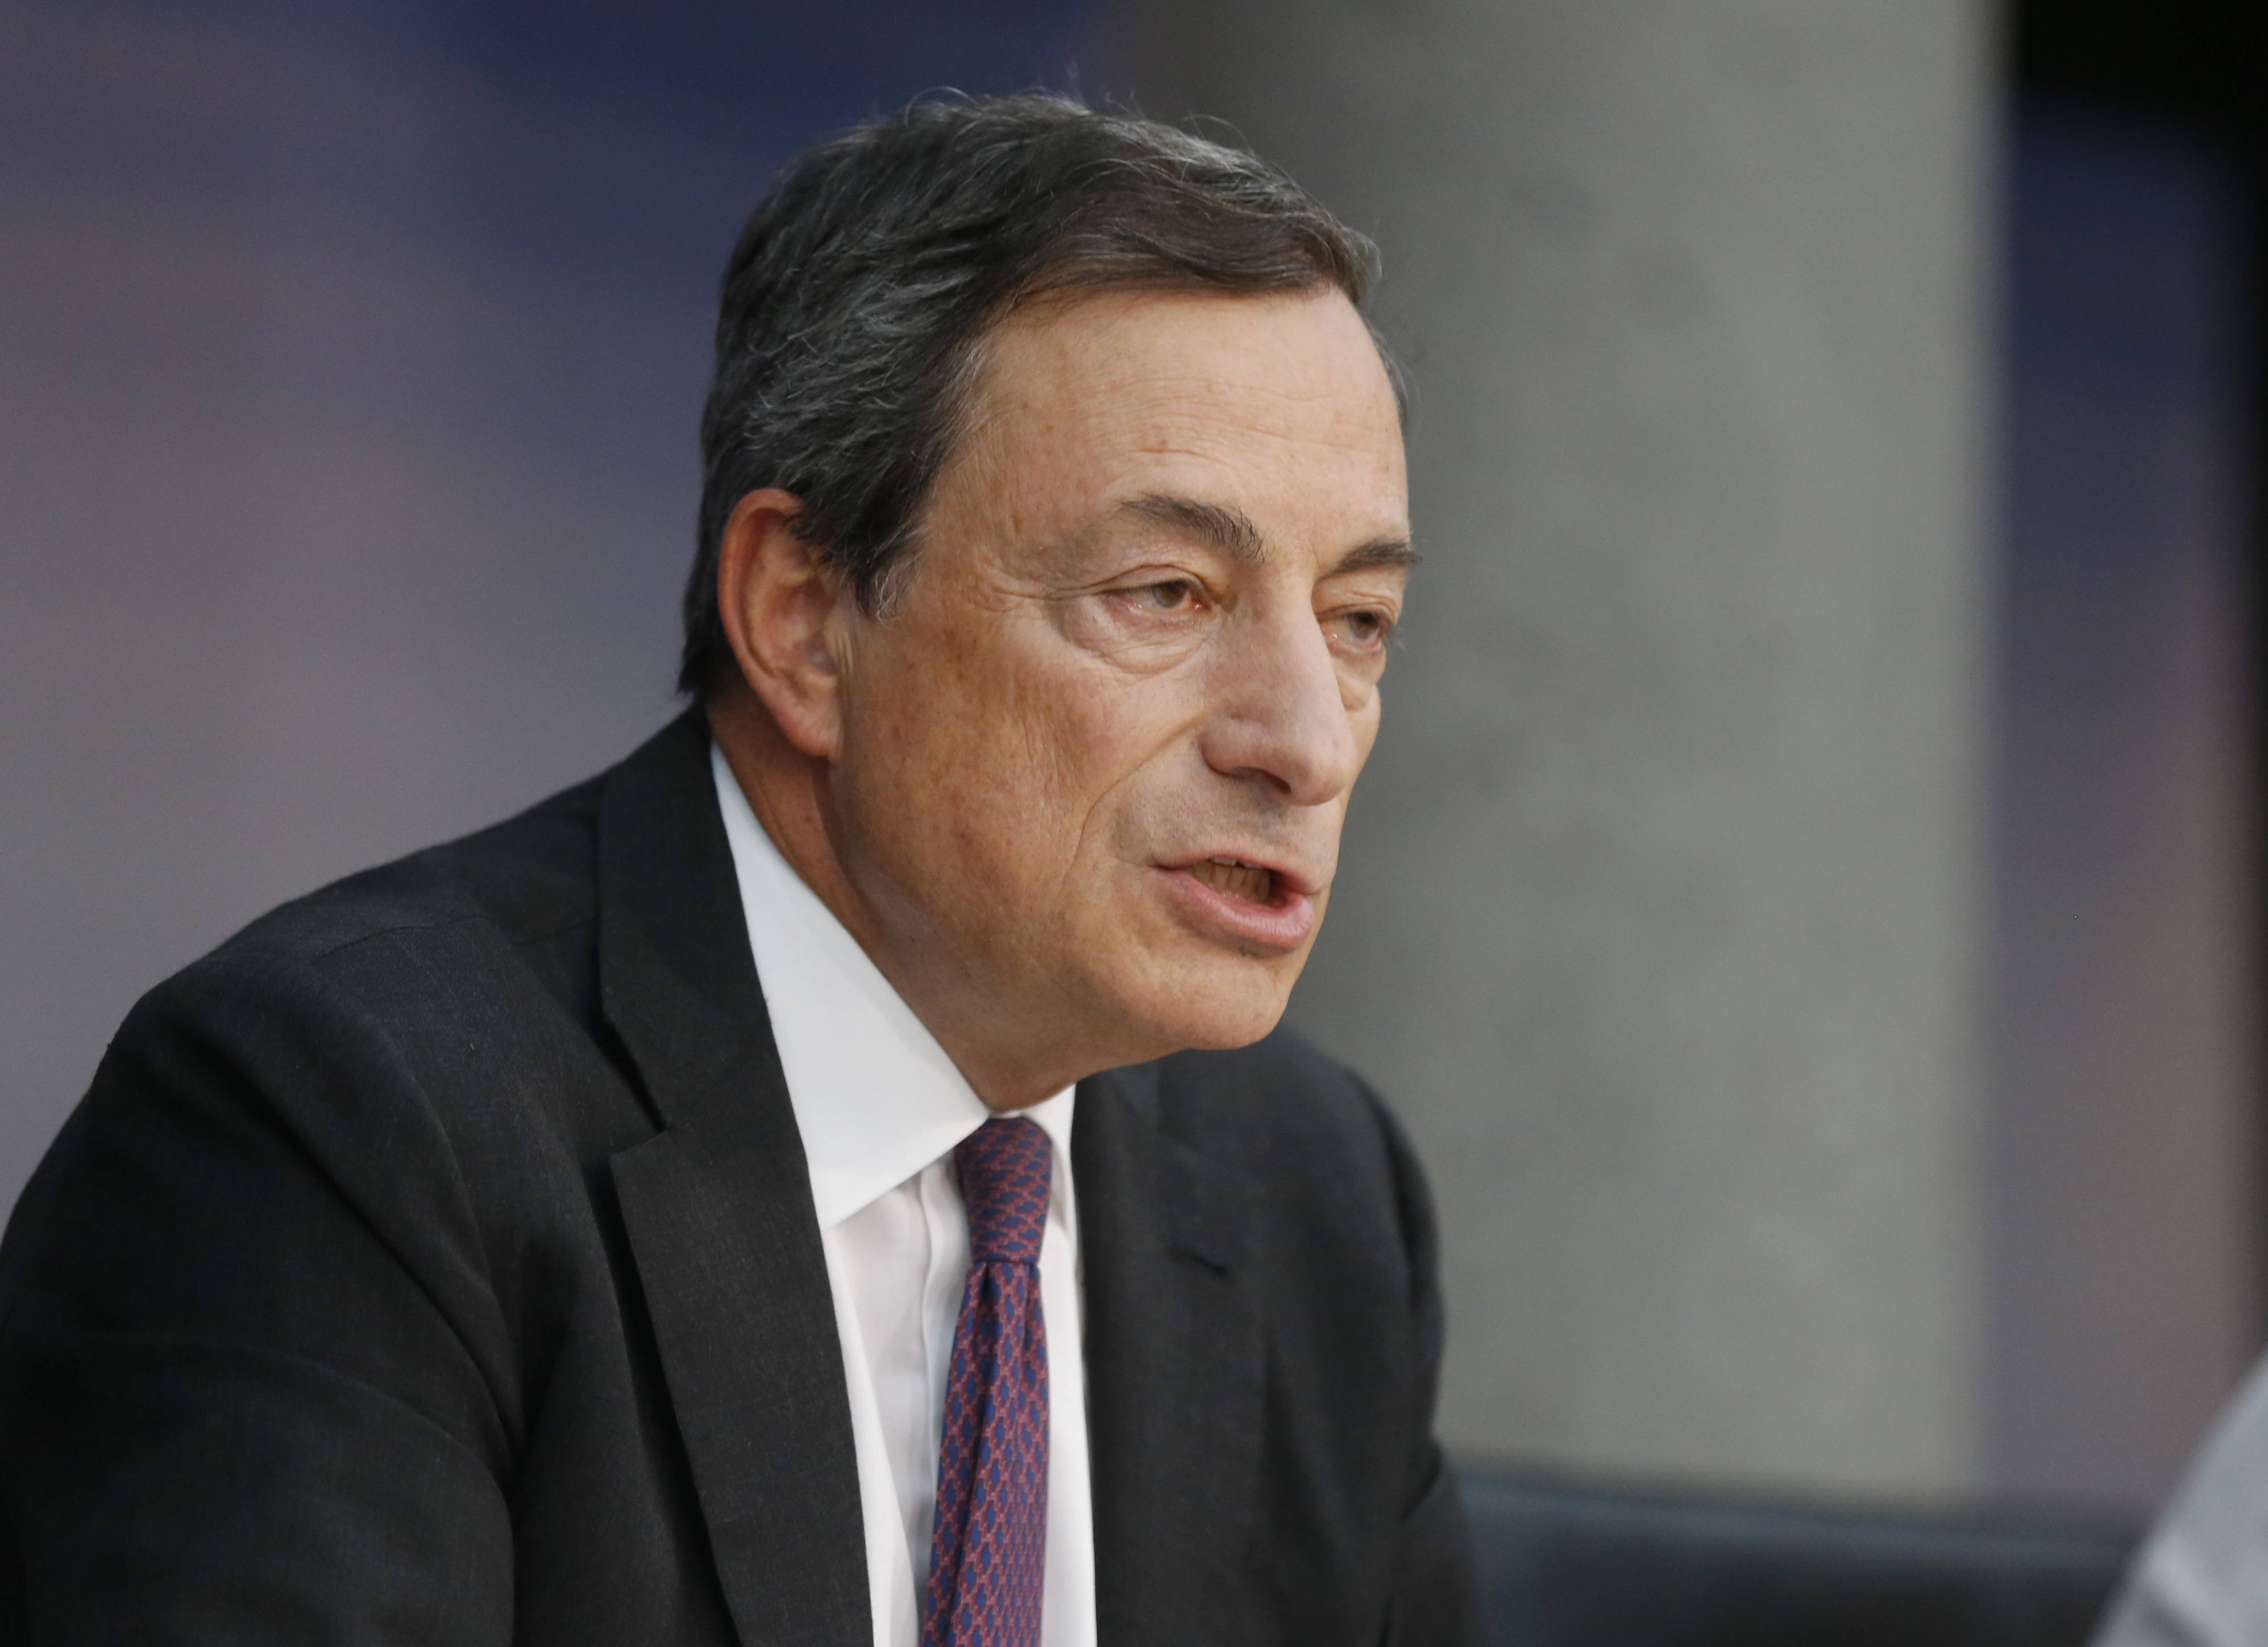 The European Central Bank has cut its interest rates and announced a new stimulus program that involves buying financial assets, a bid to salvage a weak economic recovery. ECB President Mario Draghi said the bank would start purchases of private sector financial assets in October.